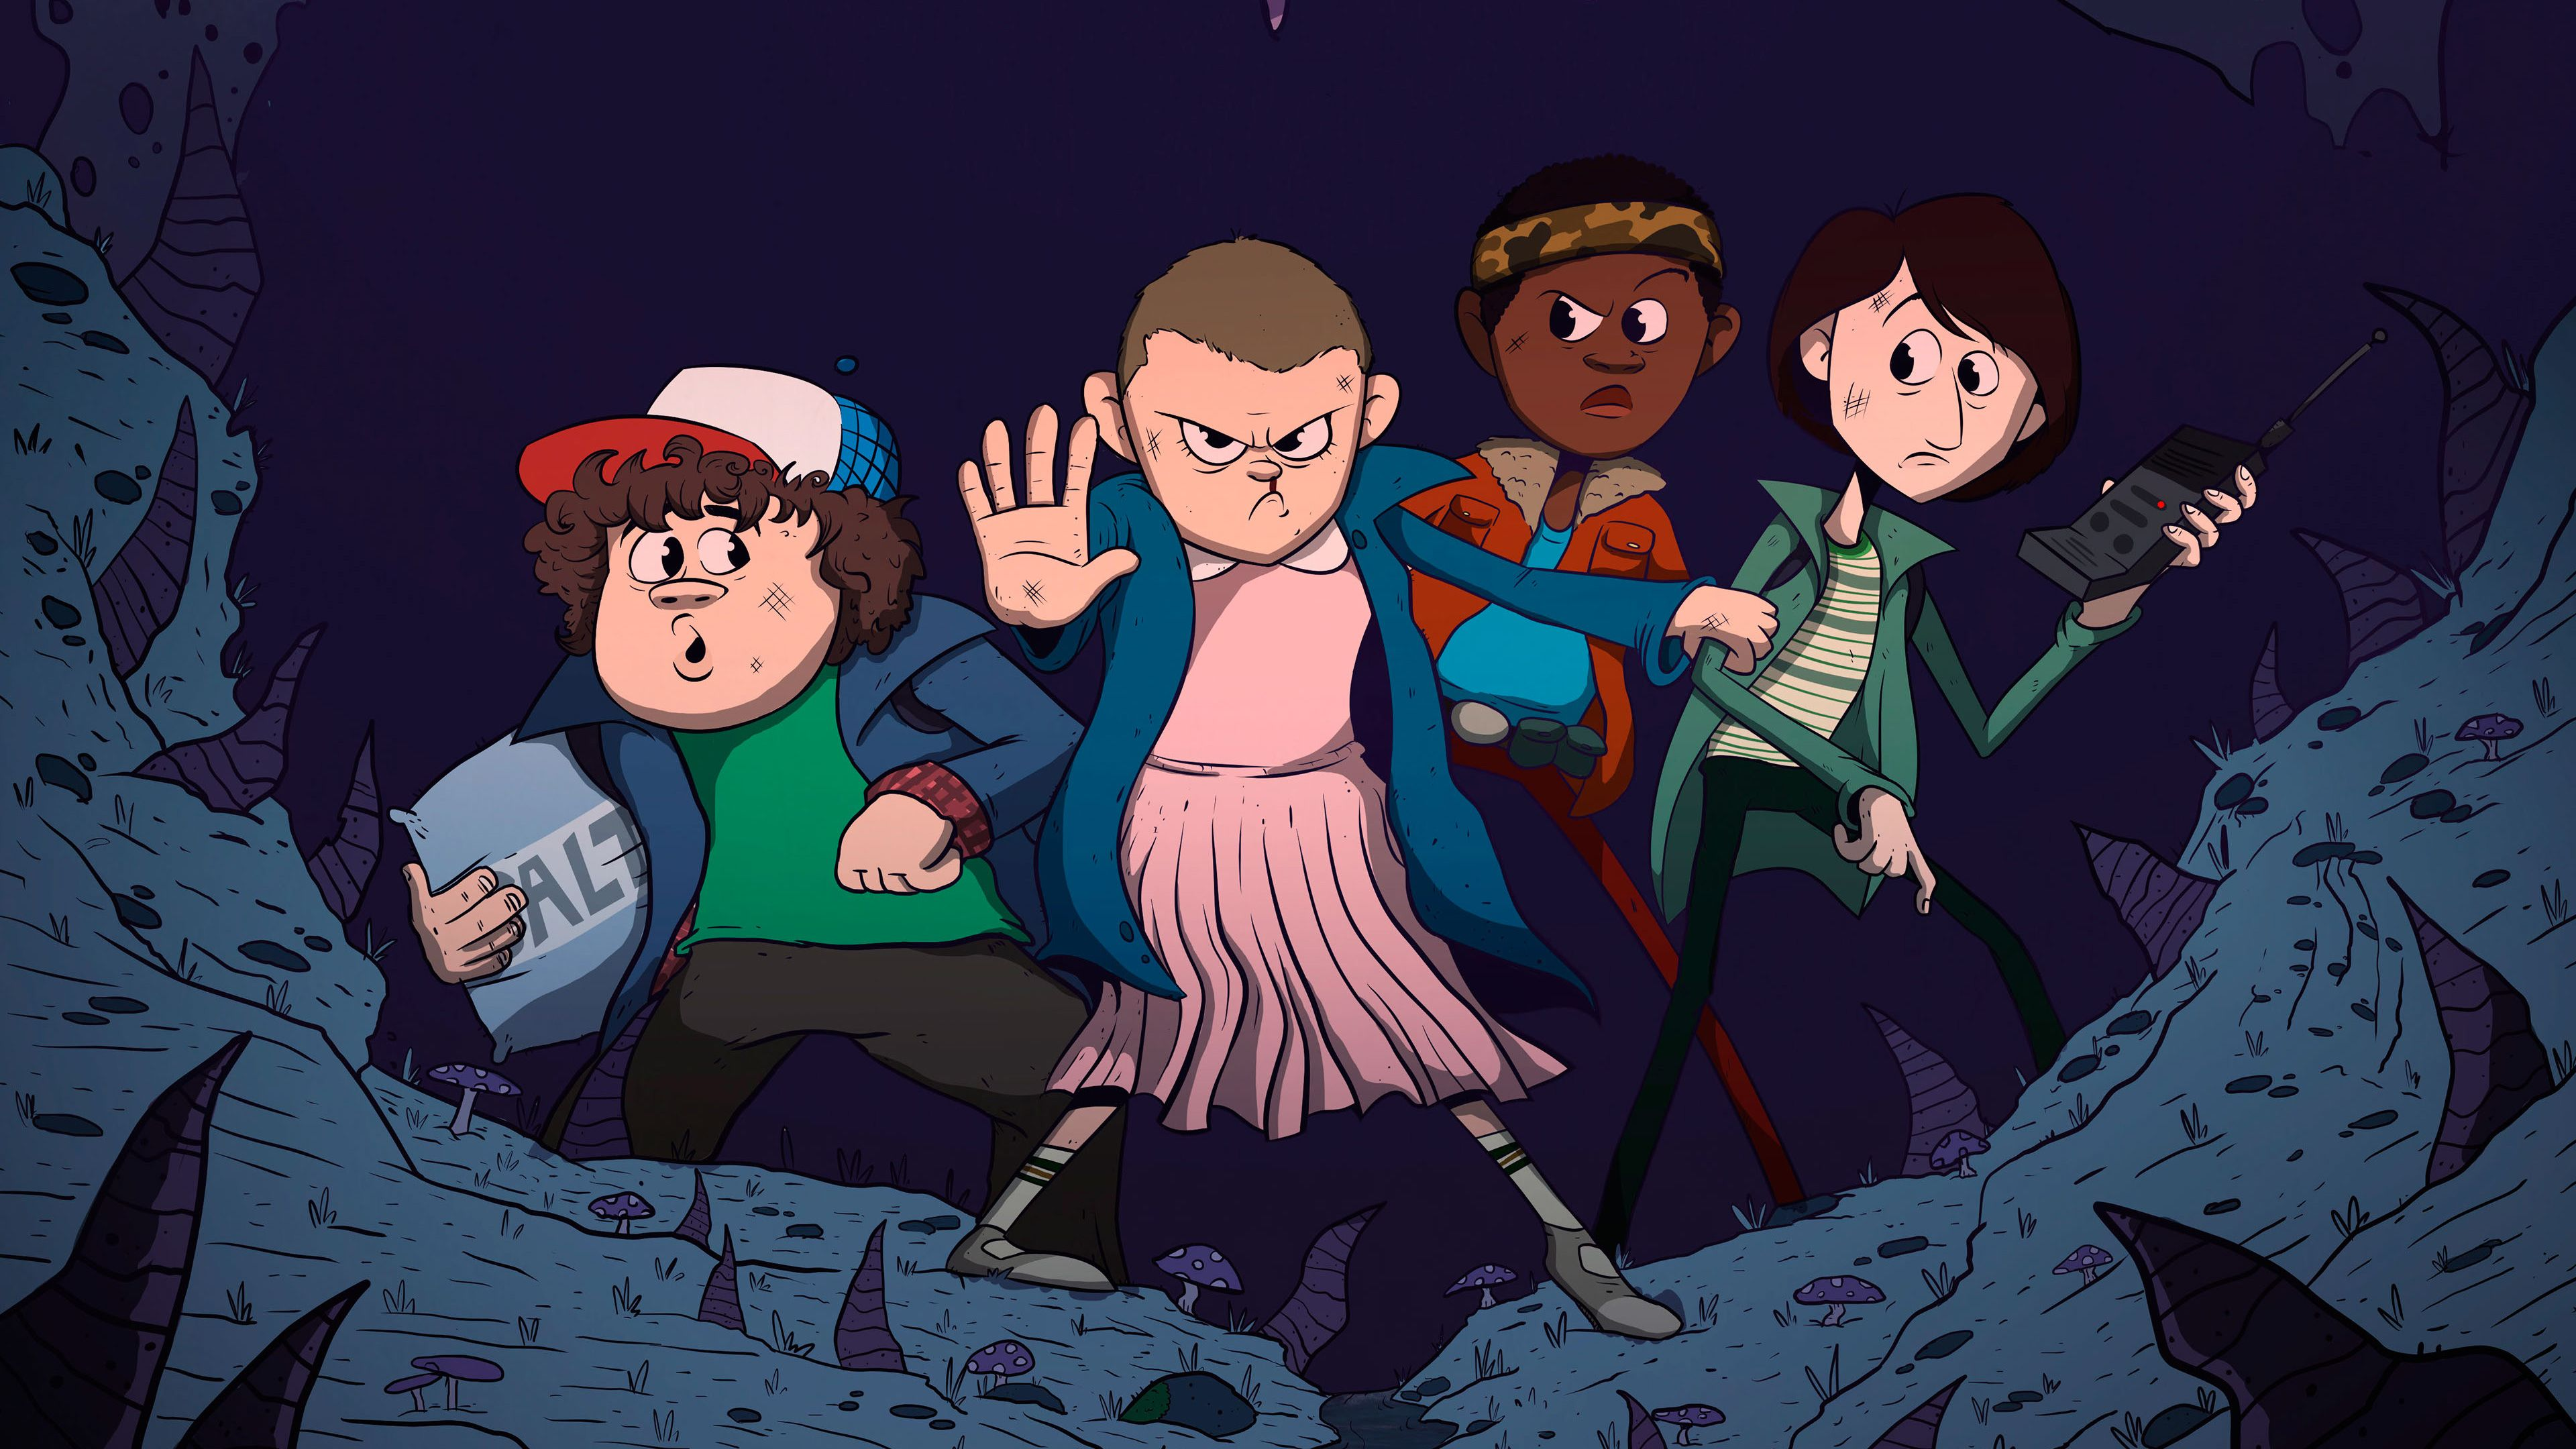 stranger things wallpaper tumblr